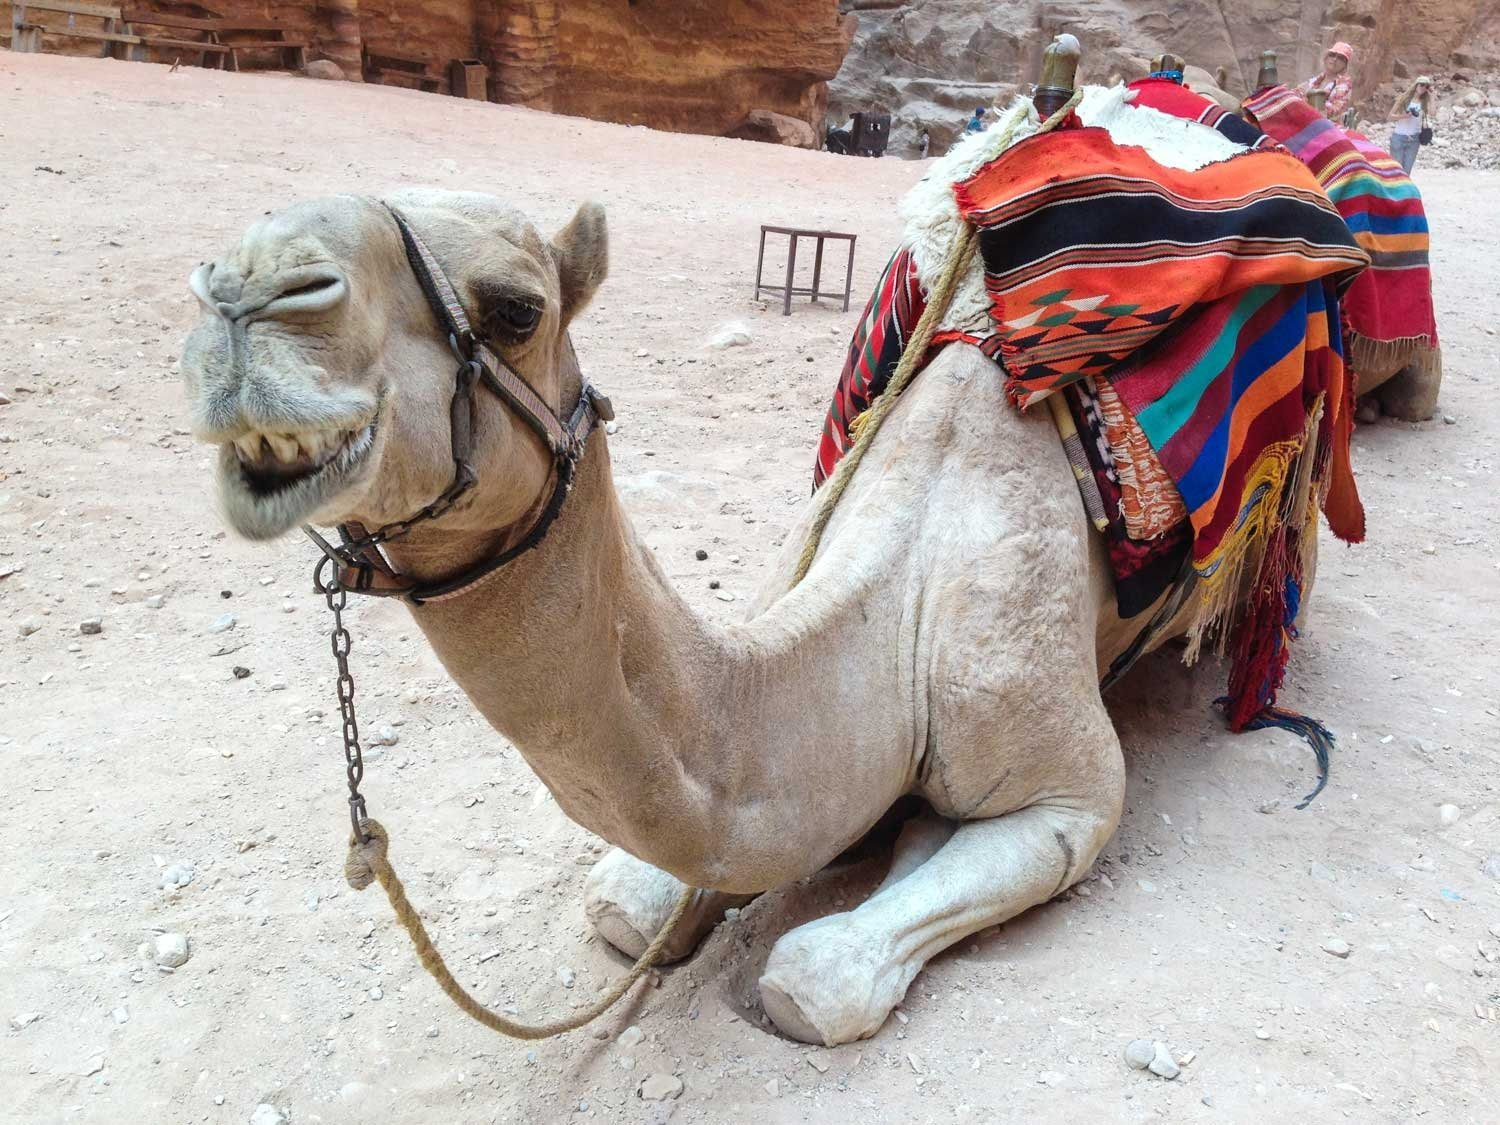 Highlights of Petra - a camel with what appears to be marks from a whip or stick